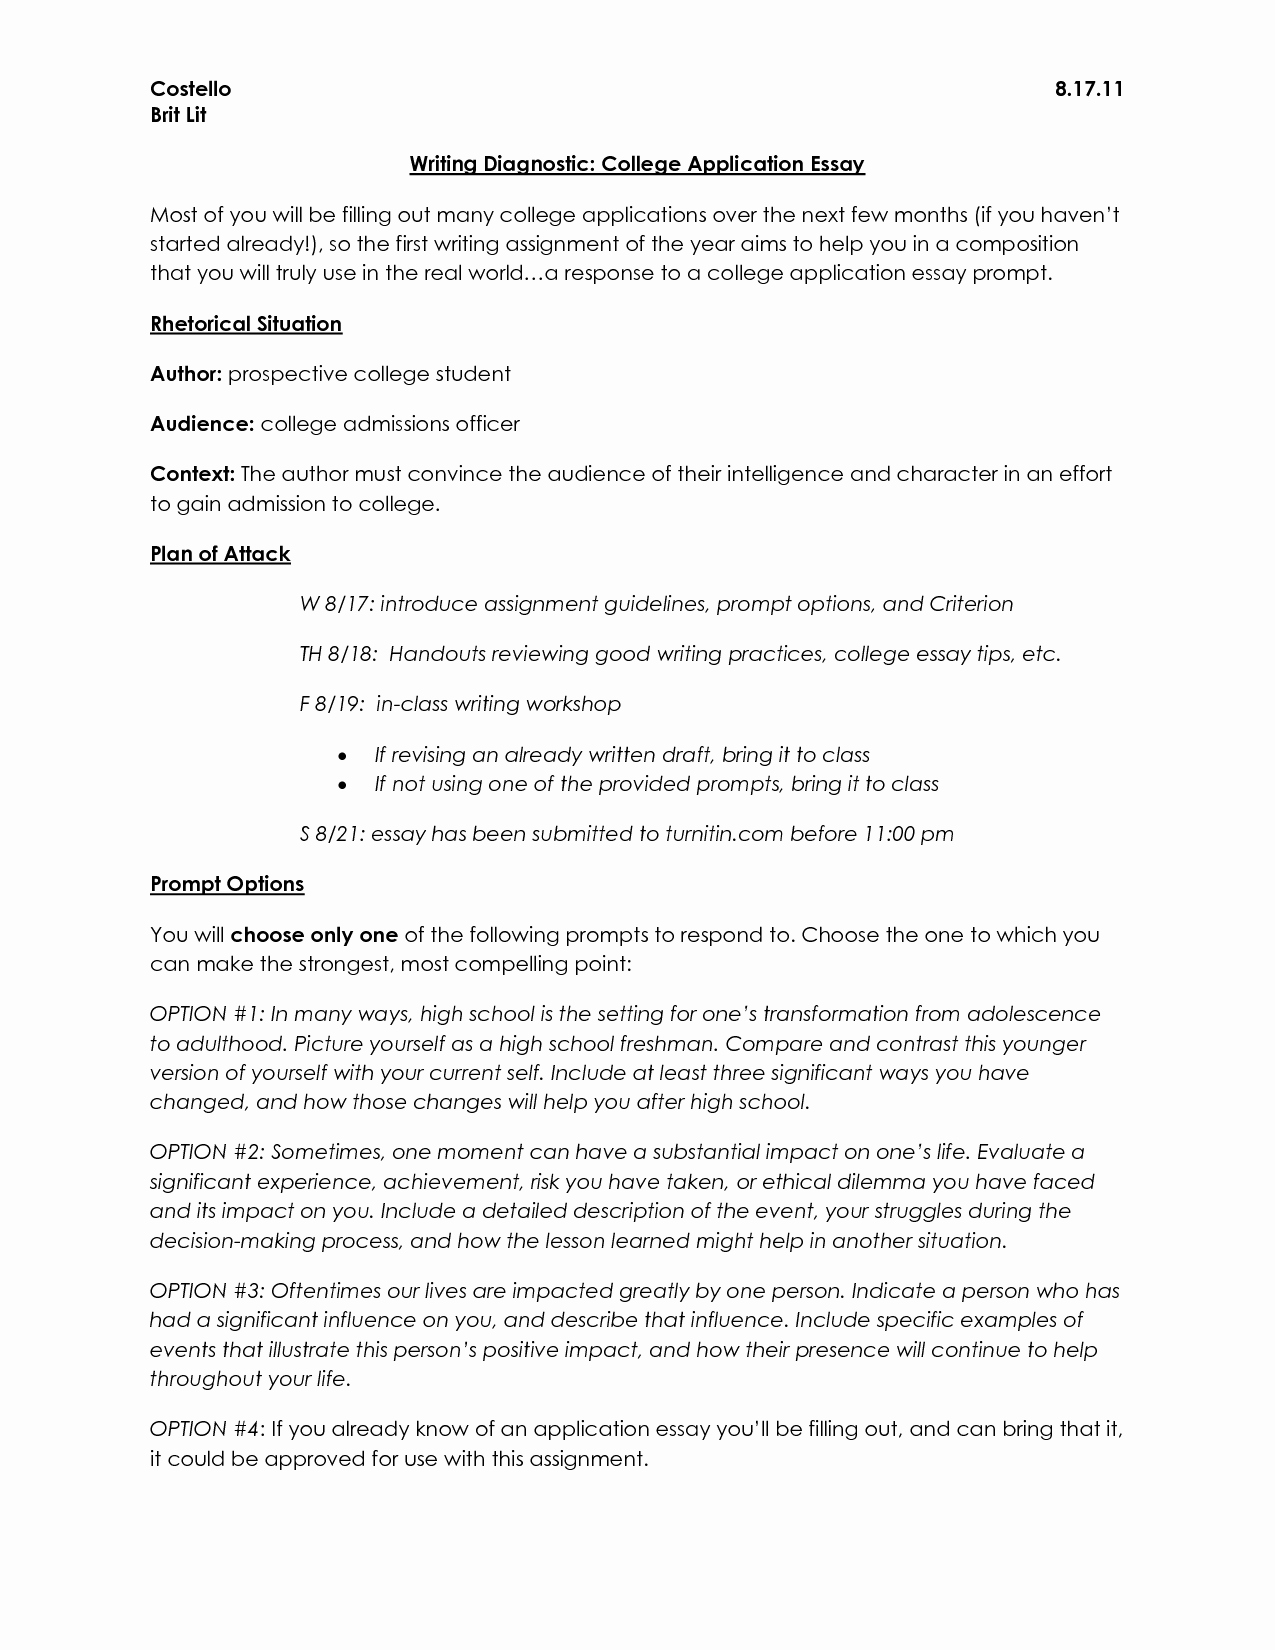 Mla format for College Essay Awesome College Essay What to Write About Bamboodownunder